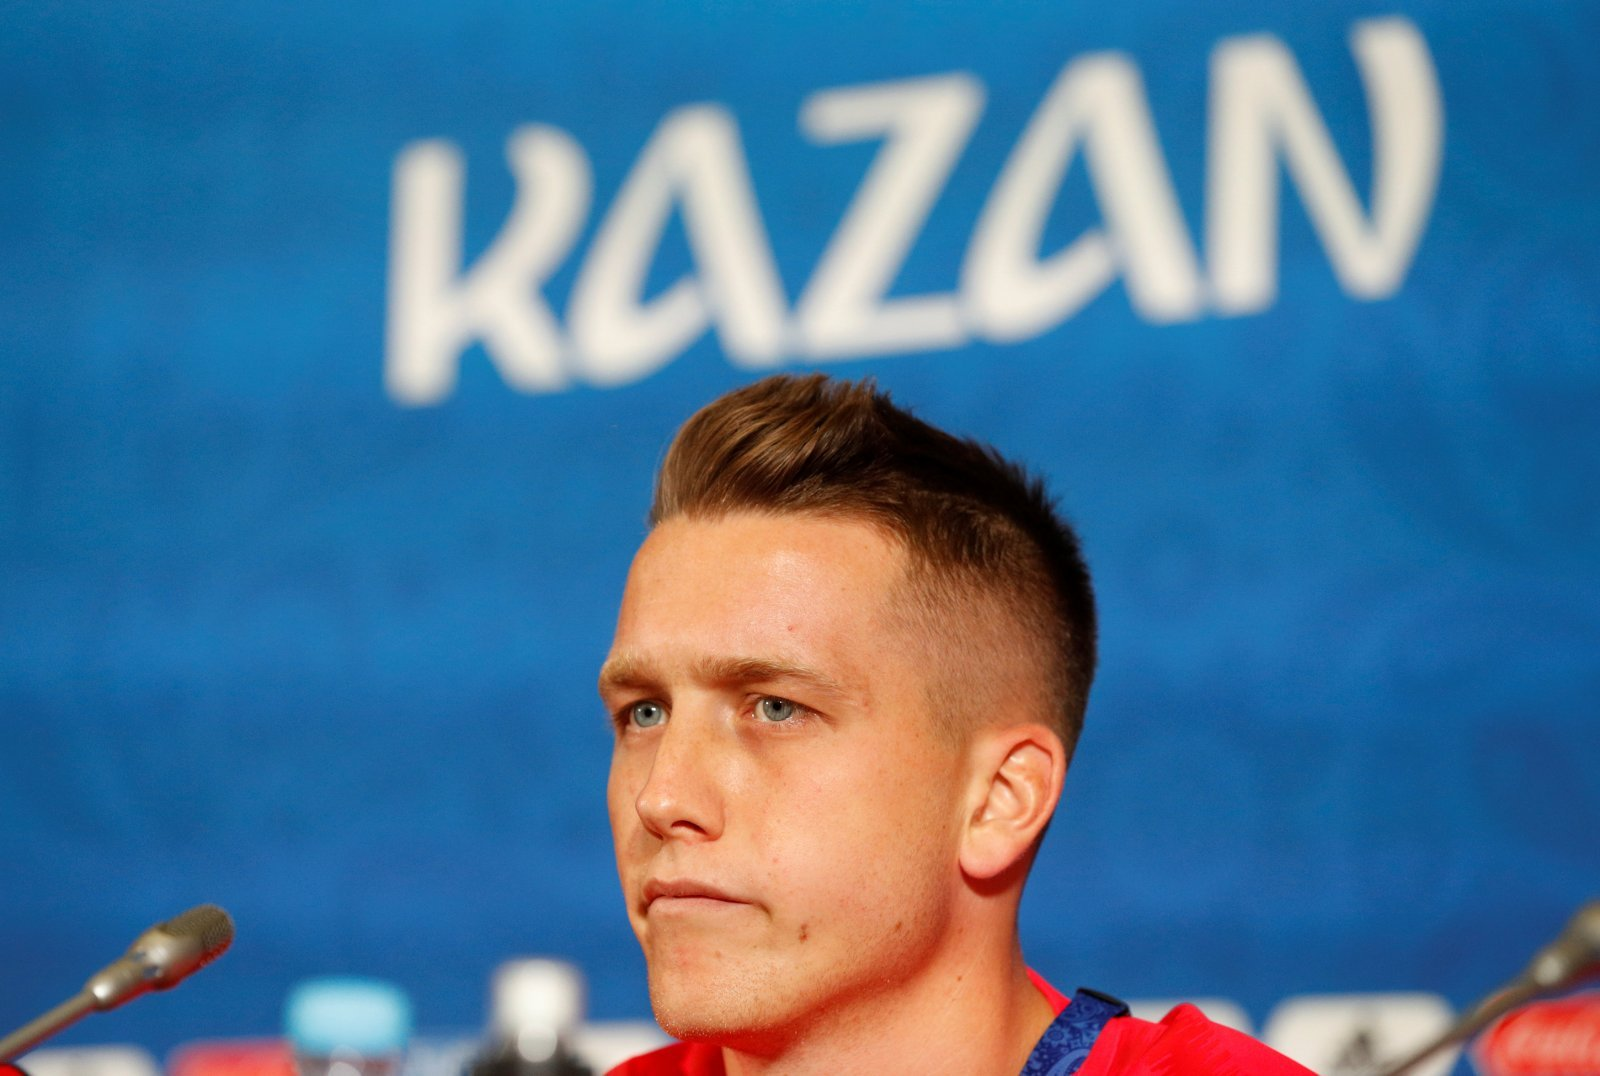 Piotr Zielensk would be a wonderfully natural fit at Sarri's Chelsea